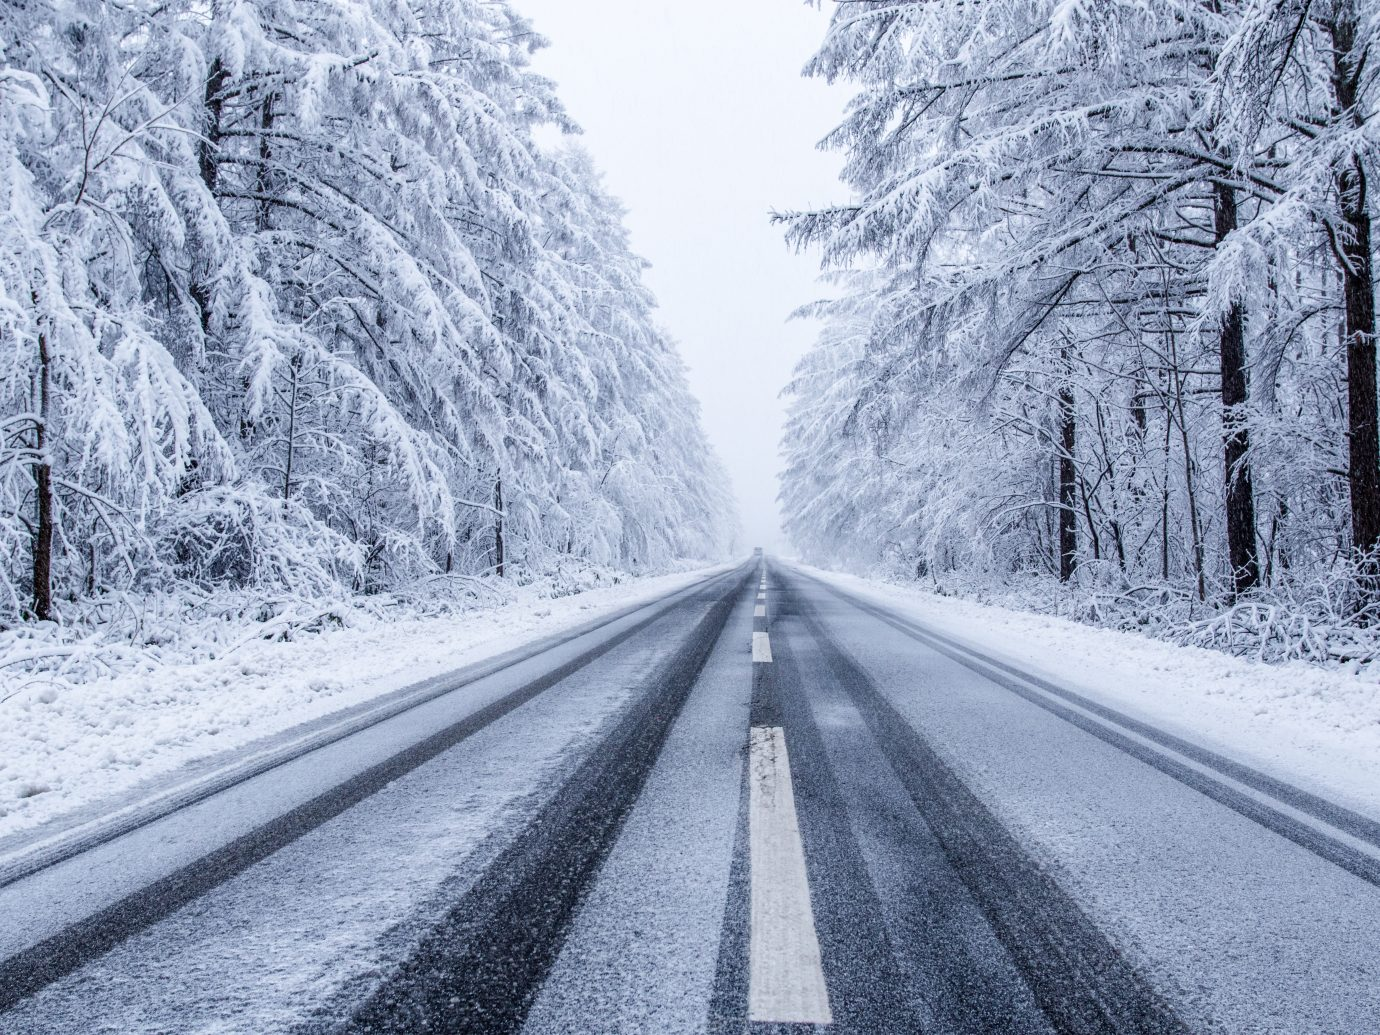 Road Passing Through Snowy Forest